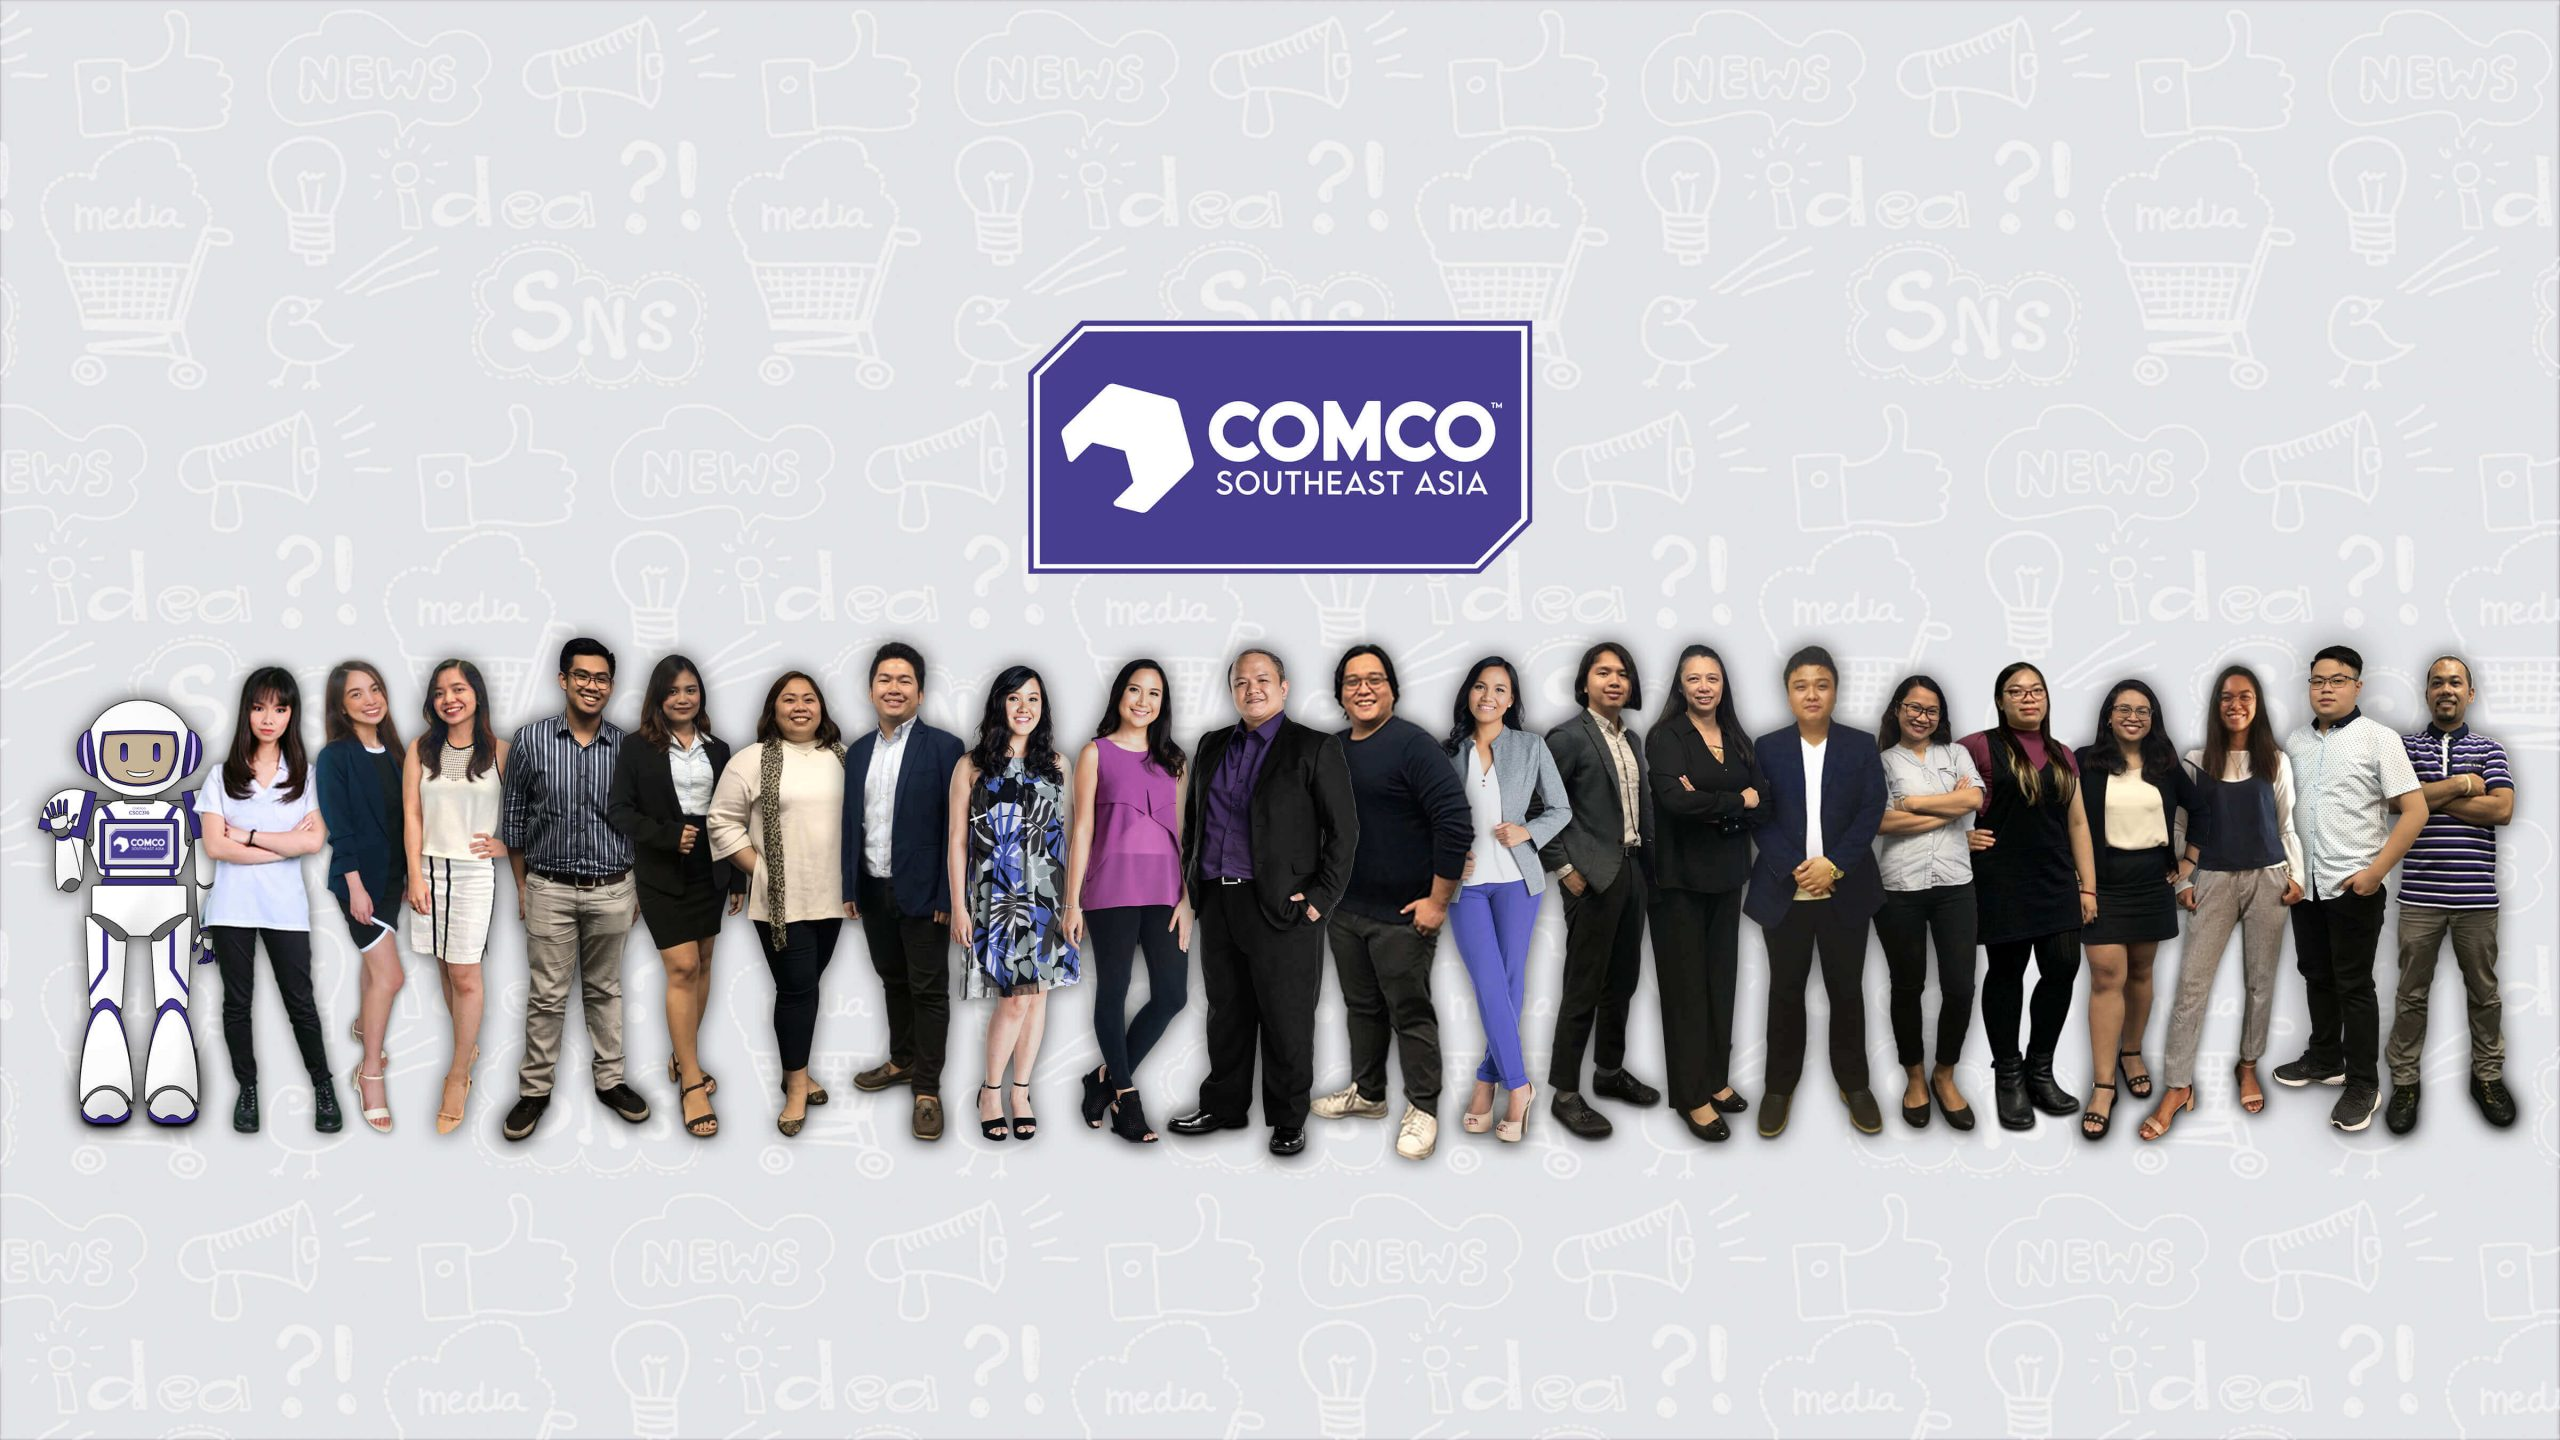 ComCo Southeast Asia bags multiple awards at the 18th IABC Quill and Marketing PR Awards in Singapore